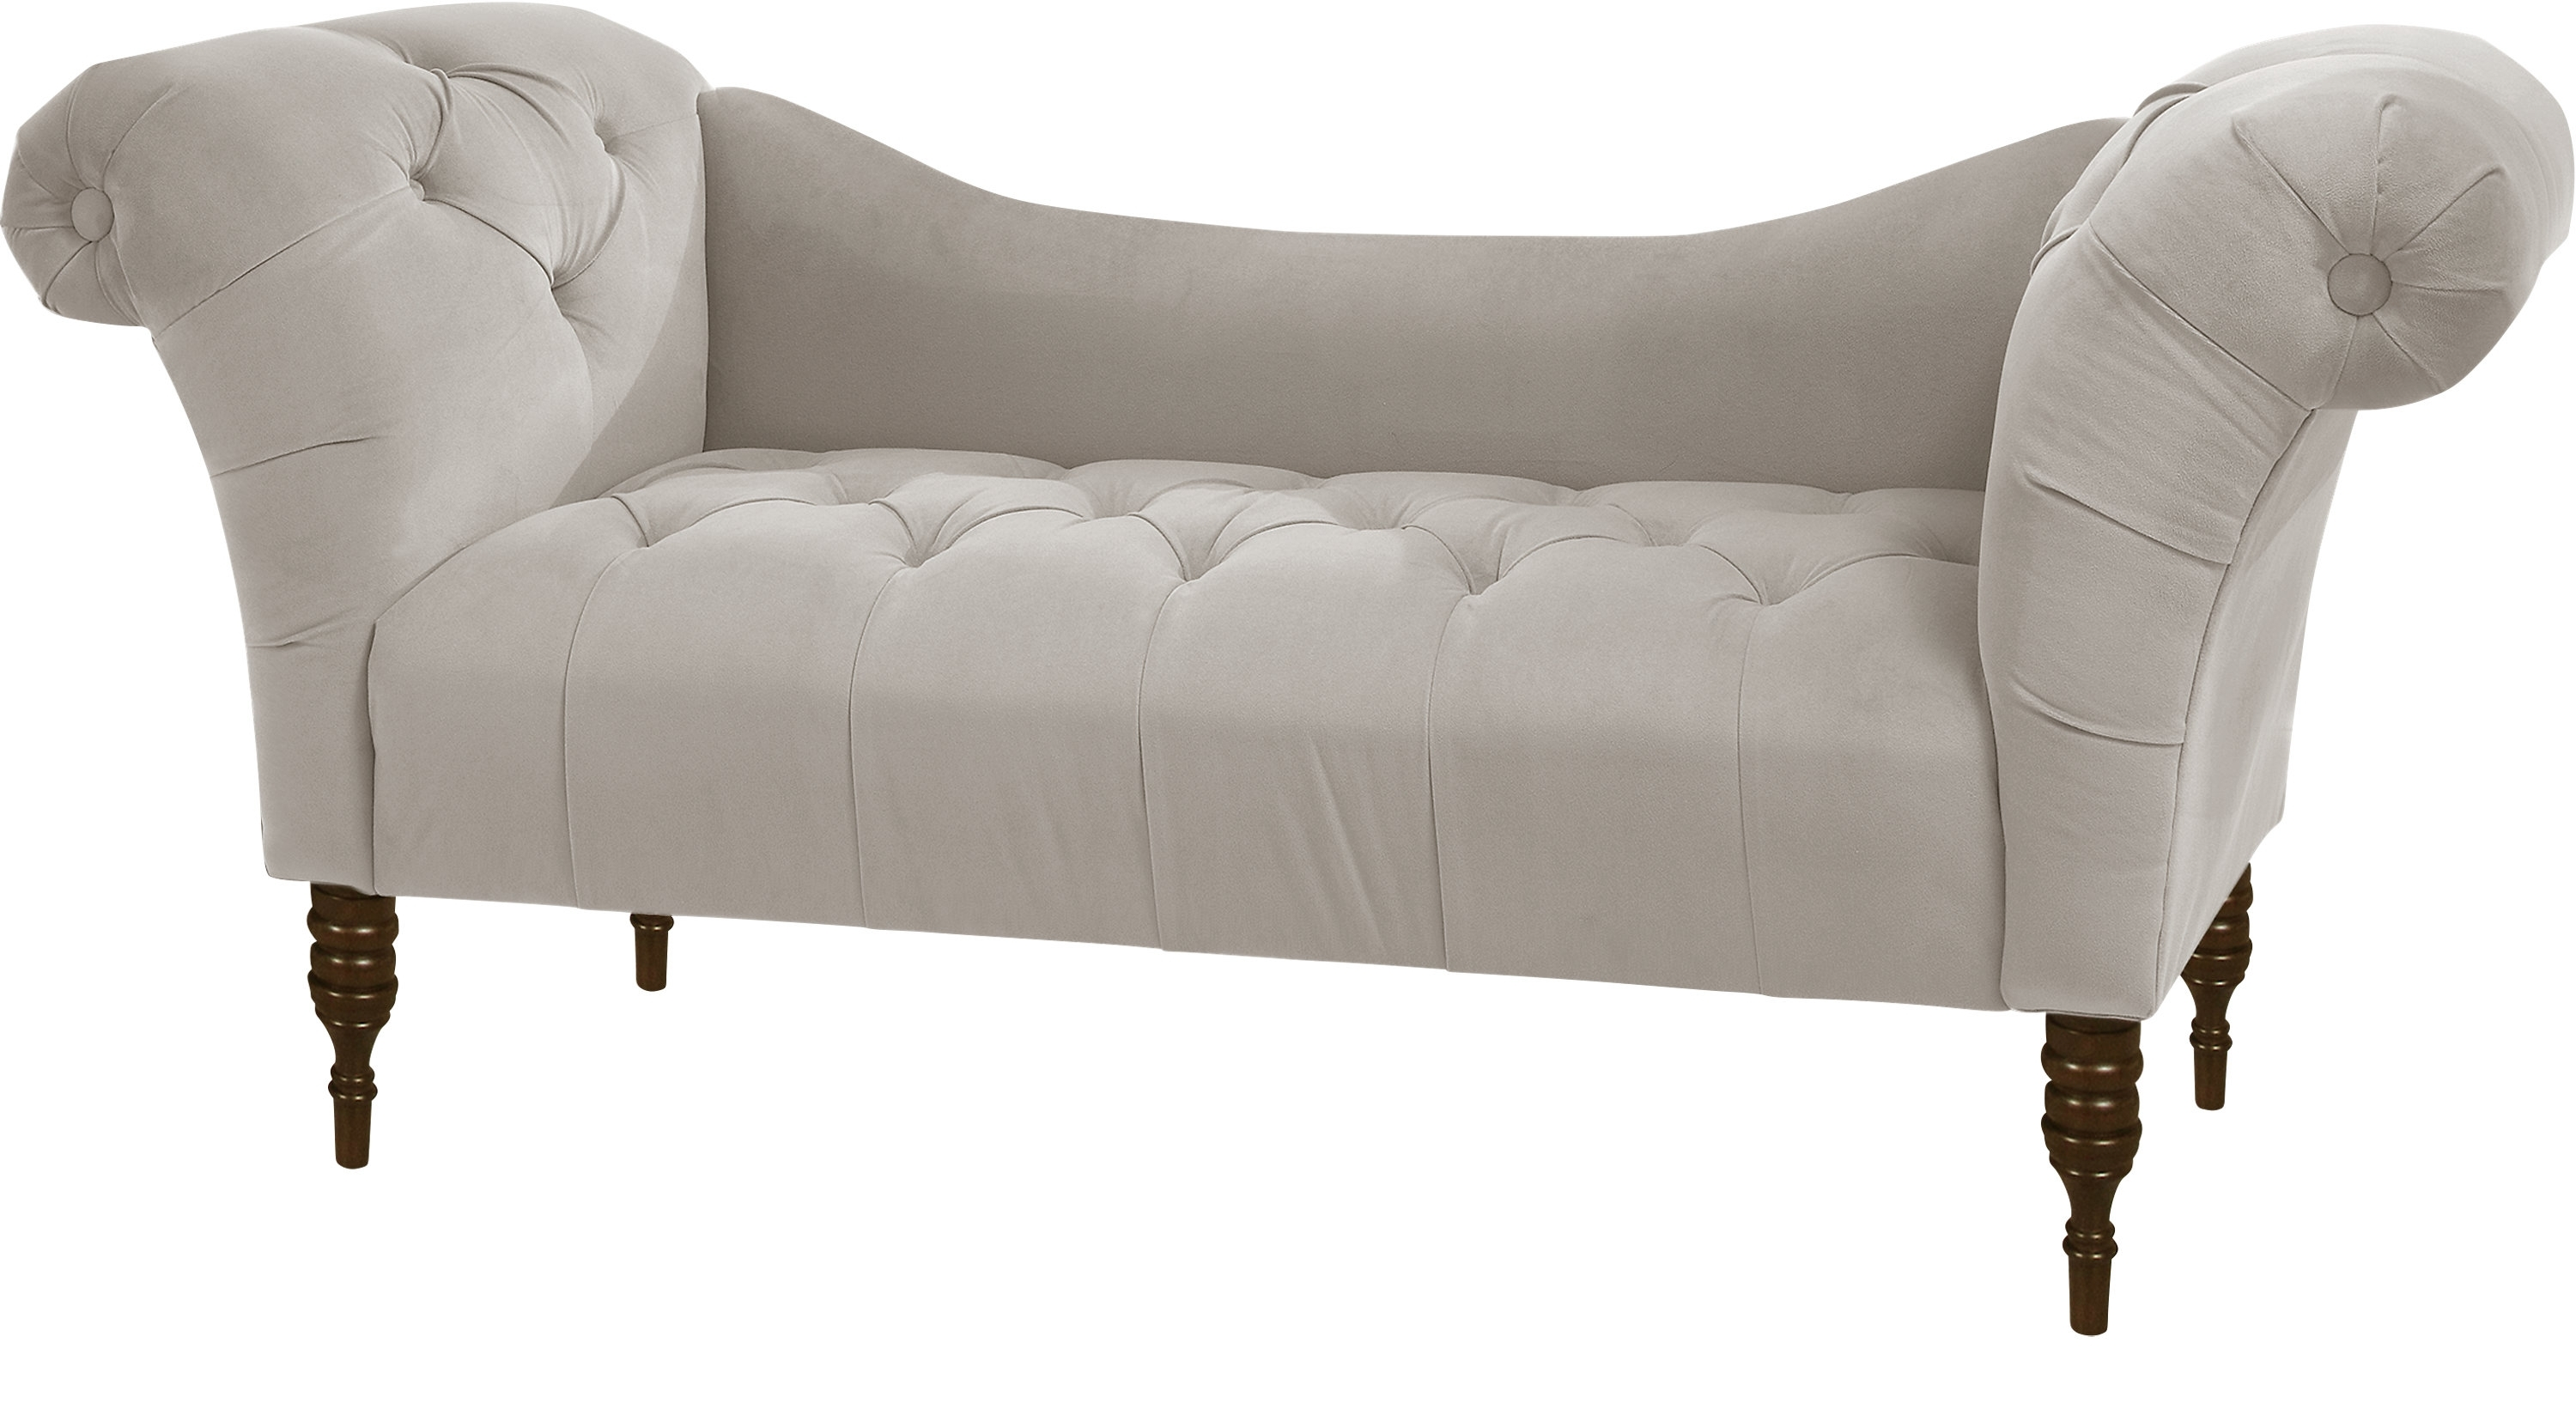 Emily Chaises With Regard To Well Liked Chaises – Chaise Lounge Sofas (View 6 of 15)